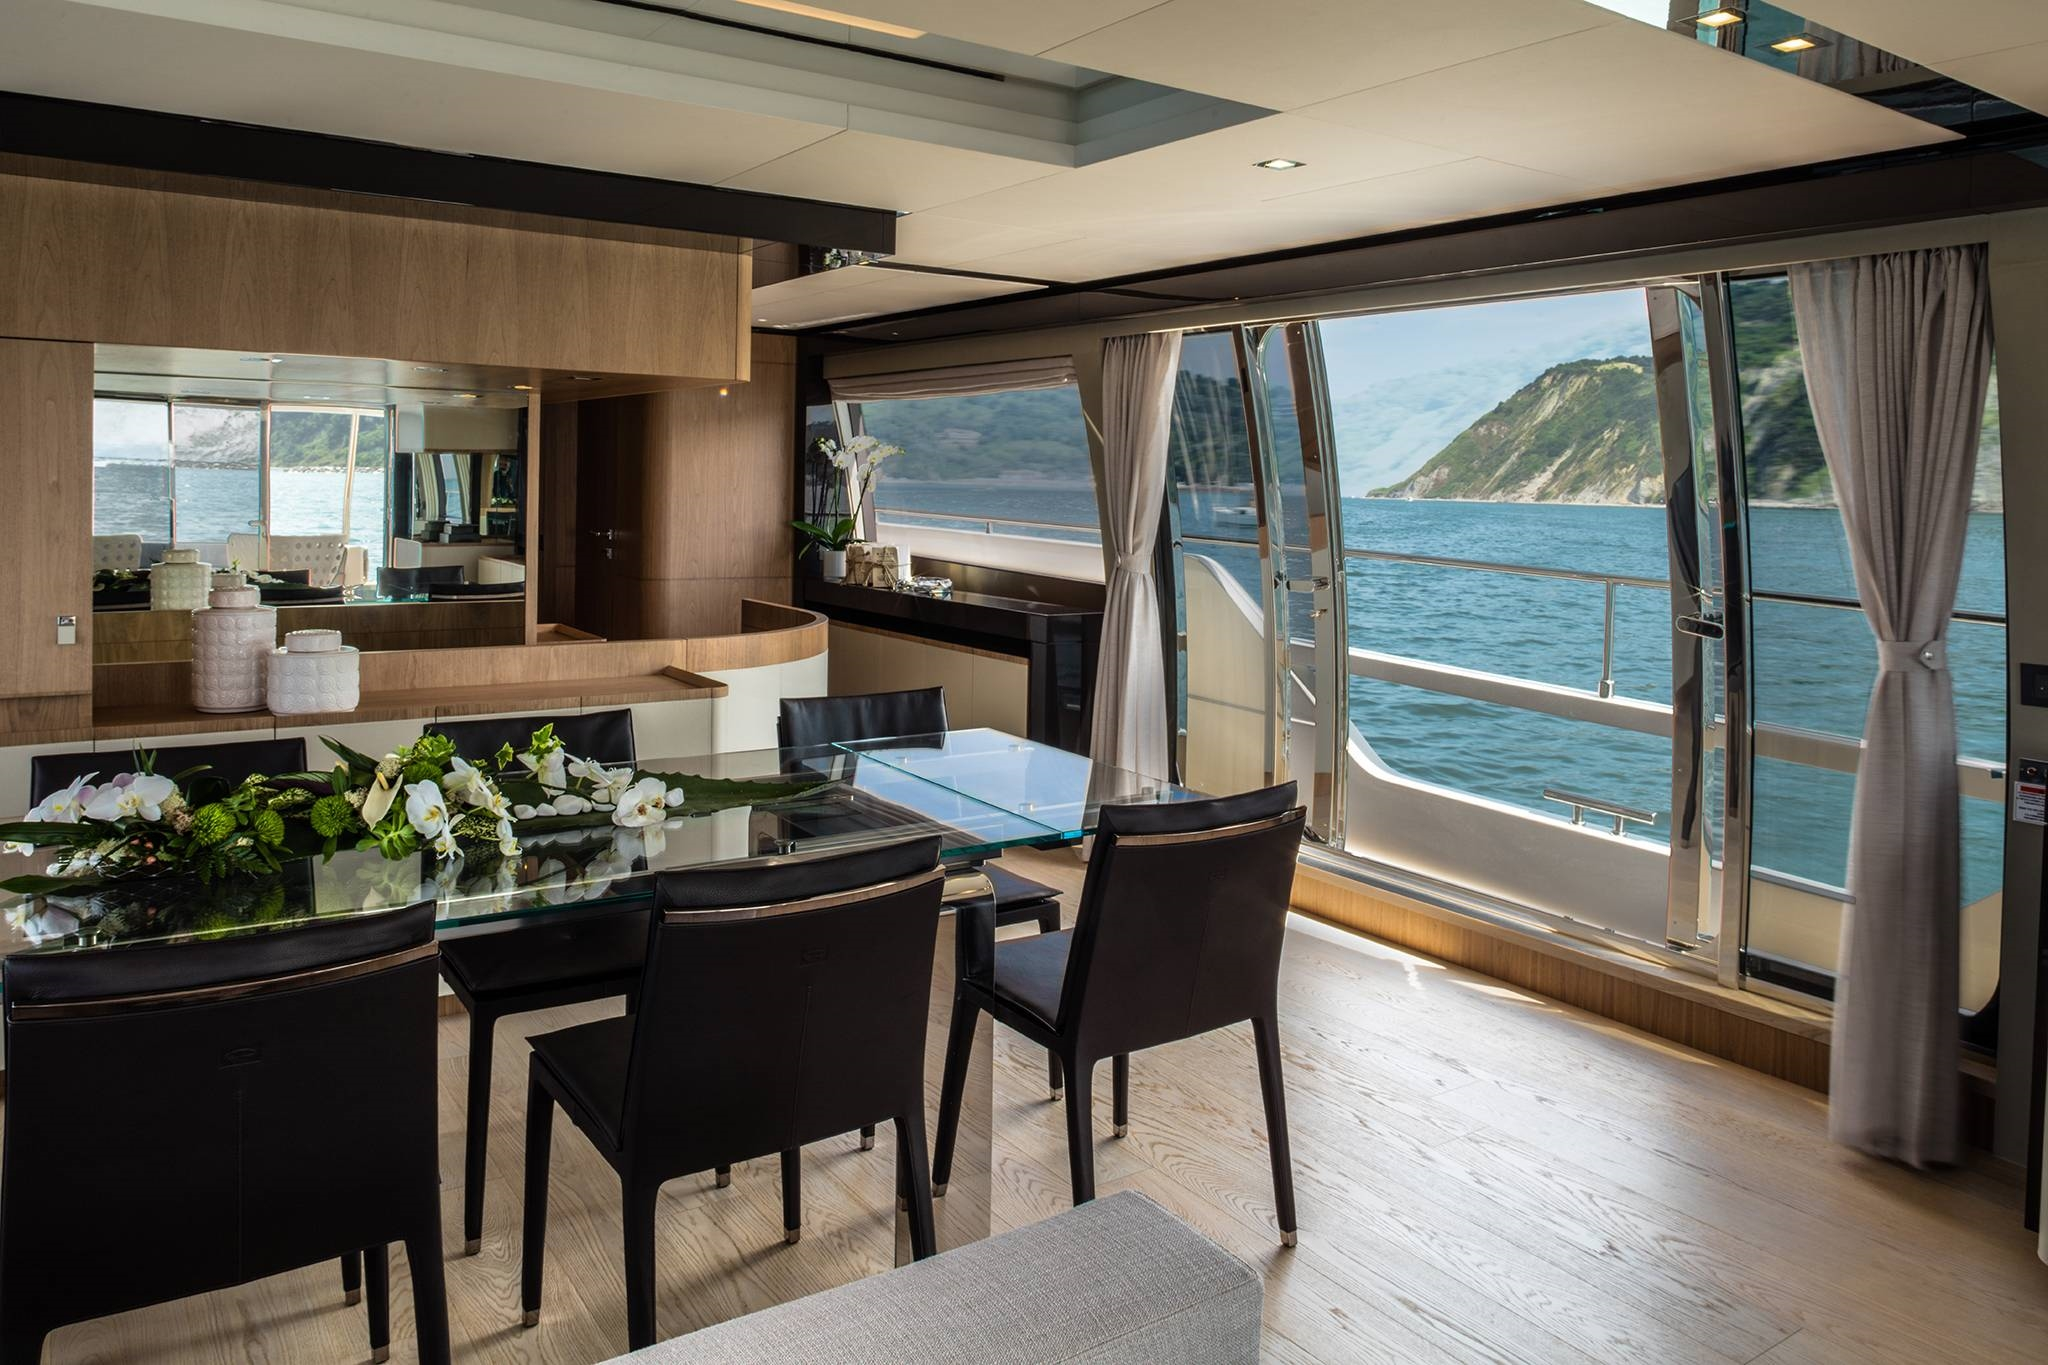 2016 Ferretti Yachts Luxury Salon Dining Table